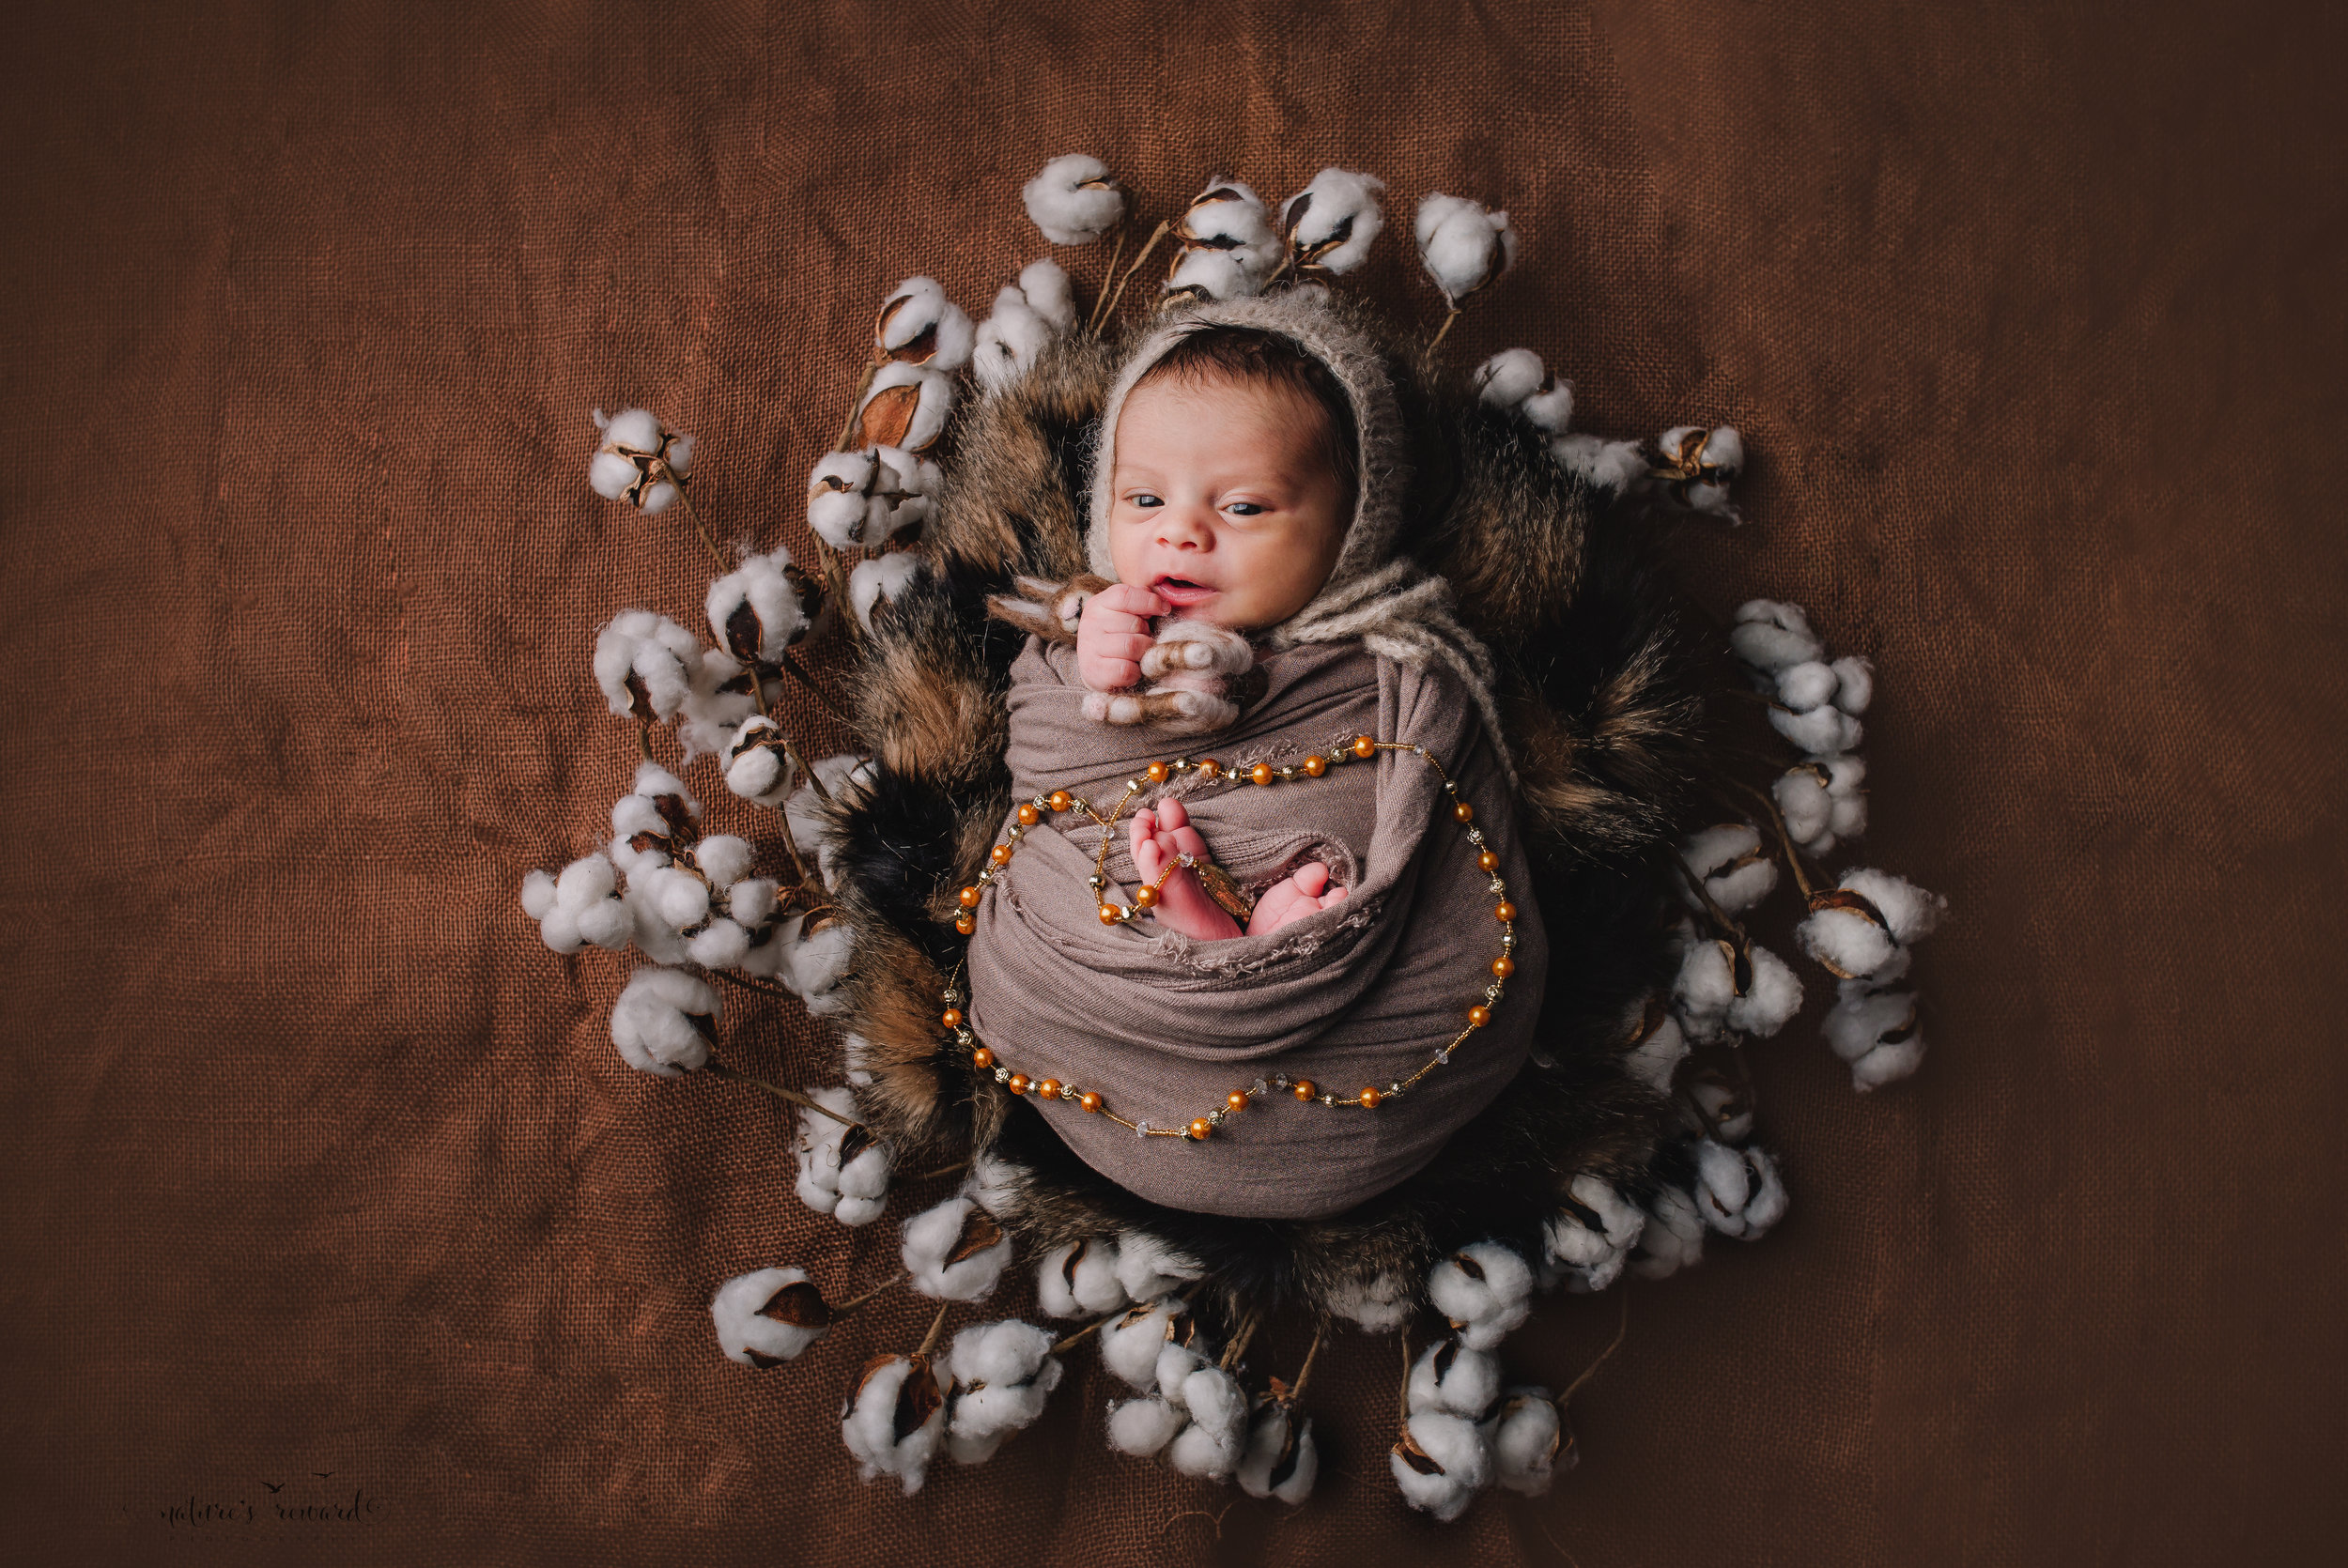 Newborn Baby boy swaddled in tan while laying on a bed of brown and black fur in a cotton blossom wreath wearing a tan bonnet holding a felt bonny and draped with a gold beaded rosary  - a portrait by Nature's Reward Photography